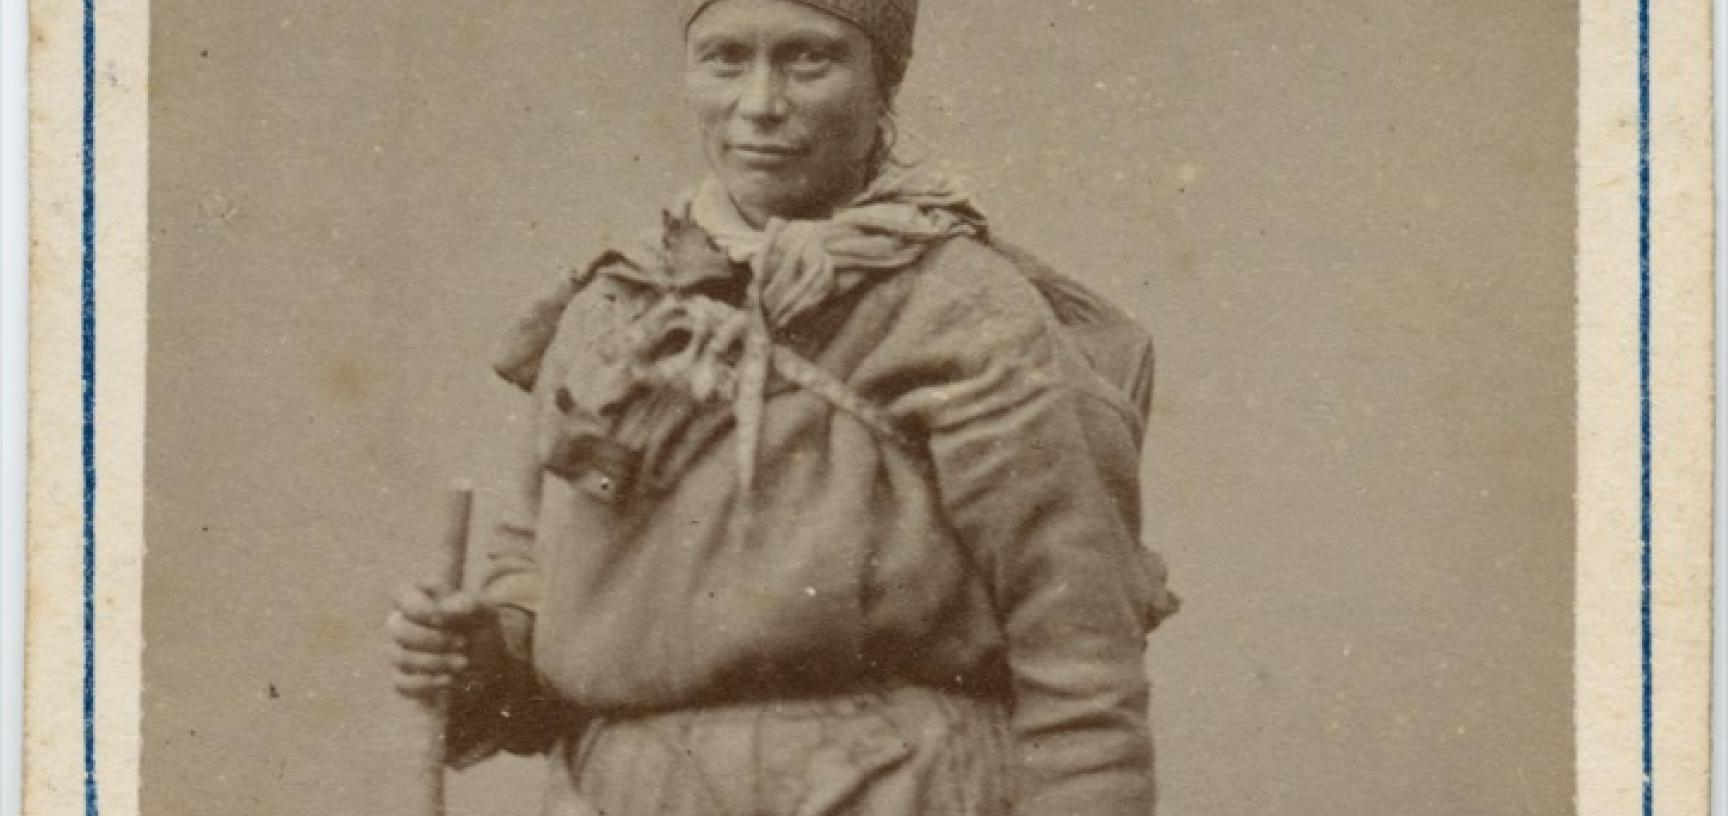 Studio portrait of a Saami woman, standing, holding a bag. Photograph by the Jørgen Wickstrøm studio. Tromsø, Norway. Circa 1870s. (Copyright Pitt Rivers Museum, University of Oxford. Accession Number: 1941.8.47)